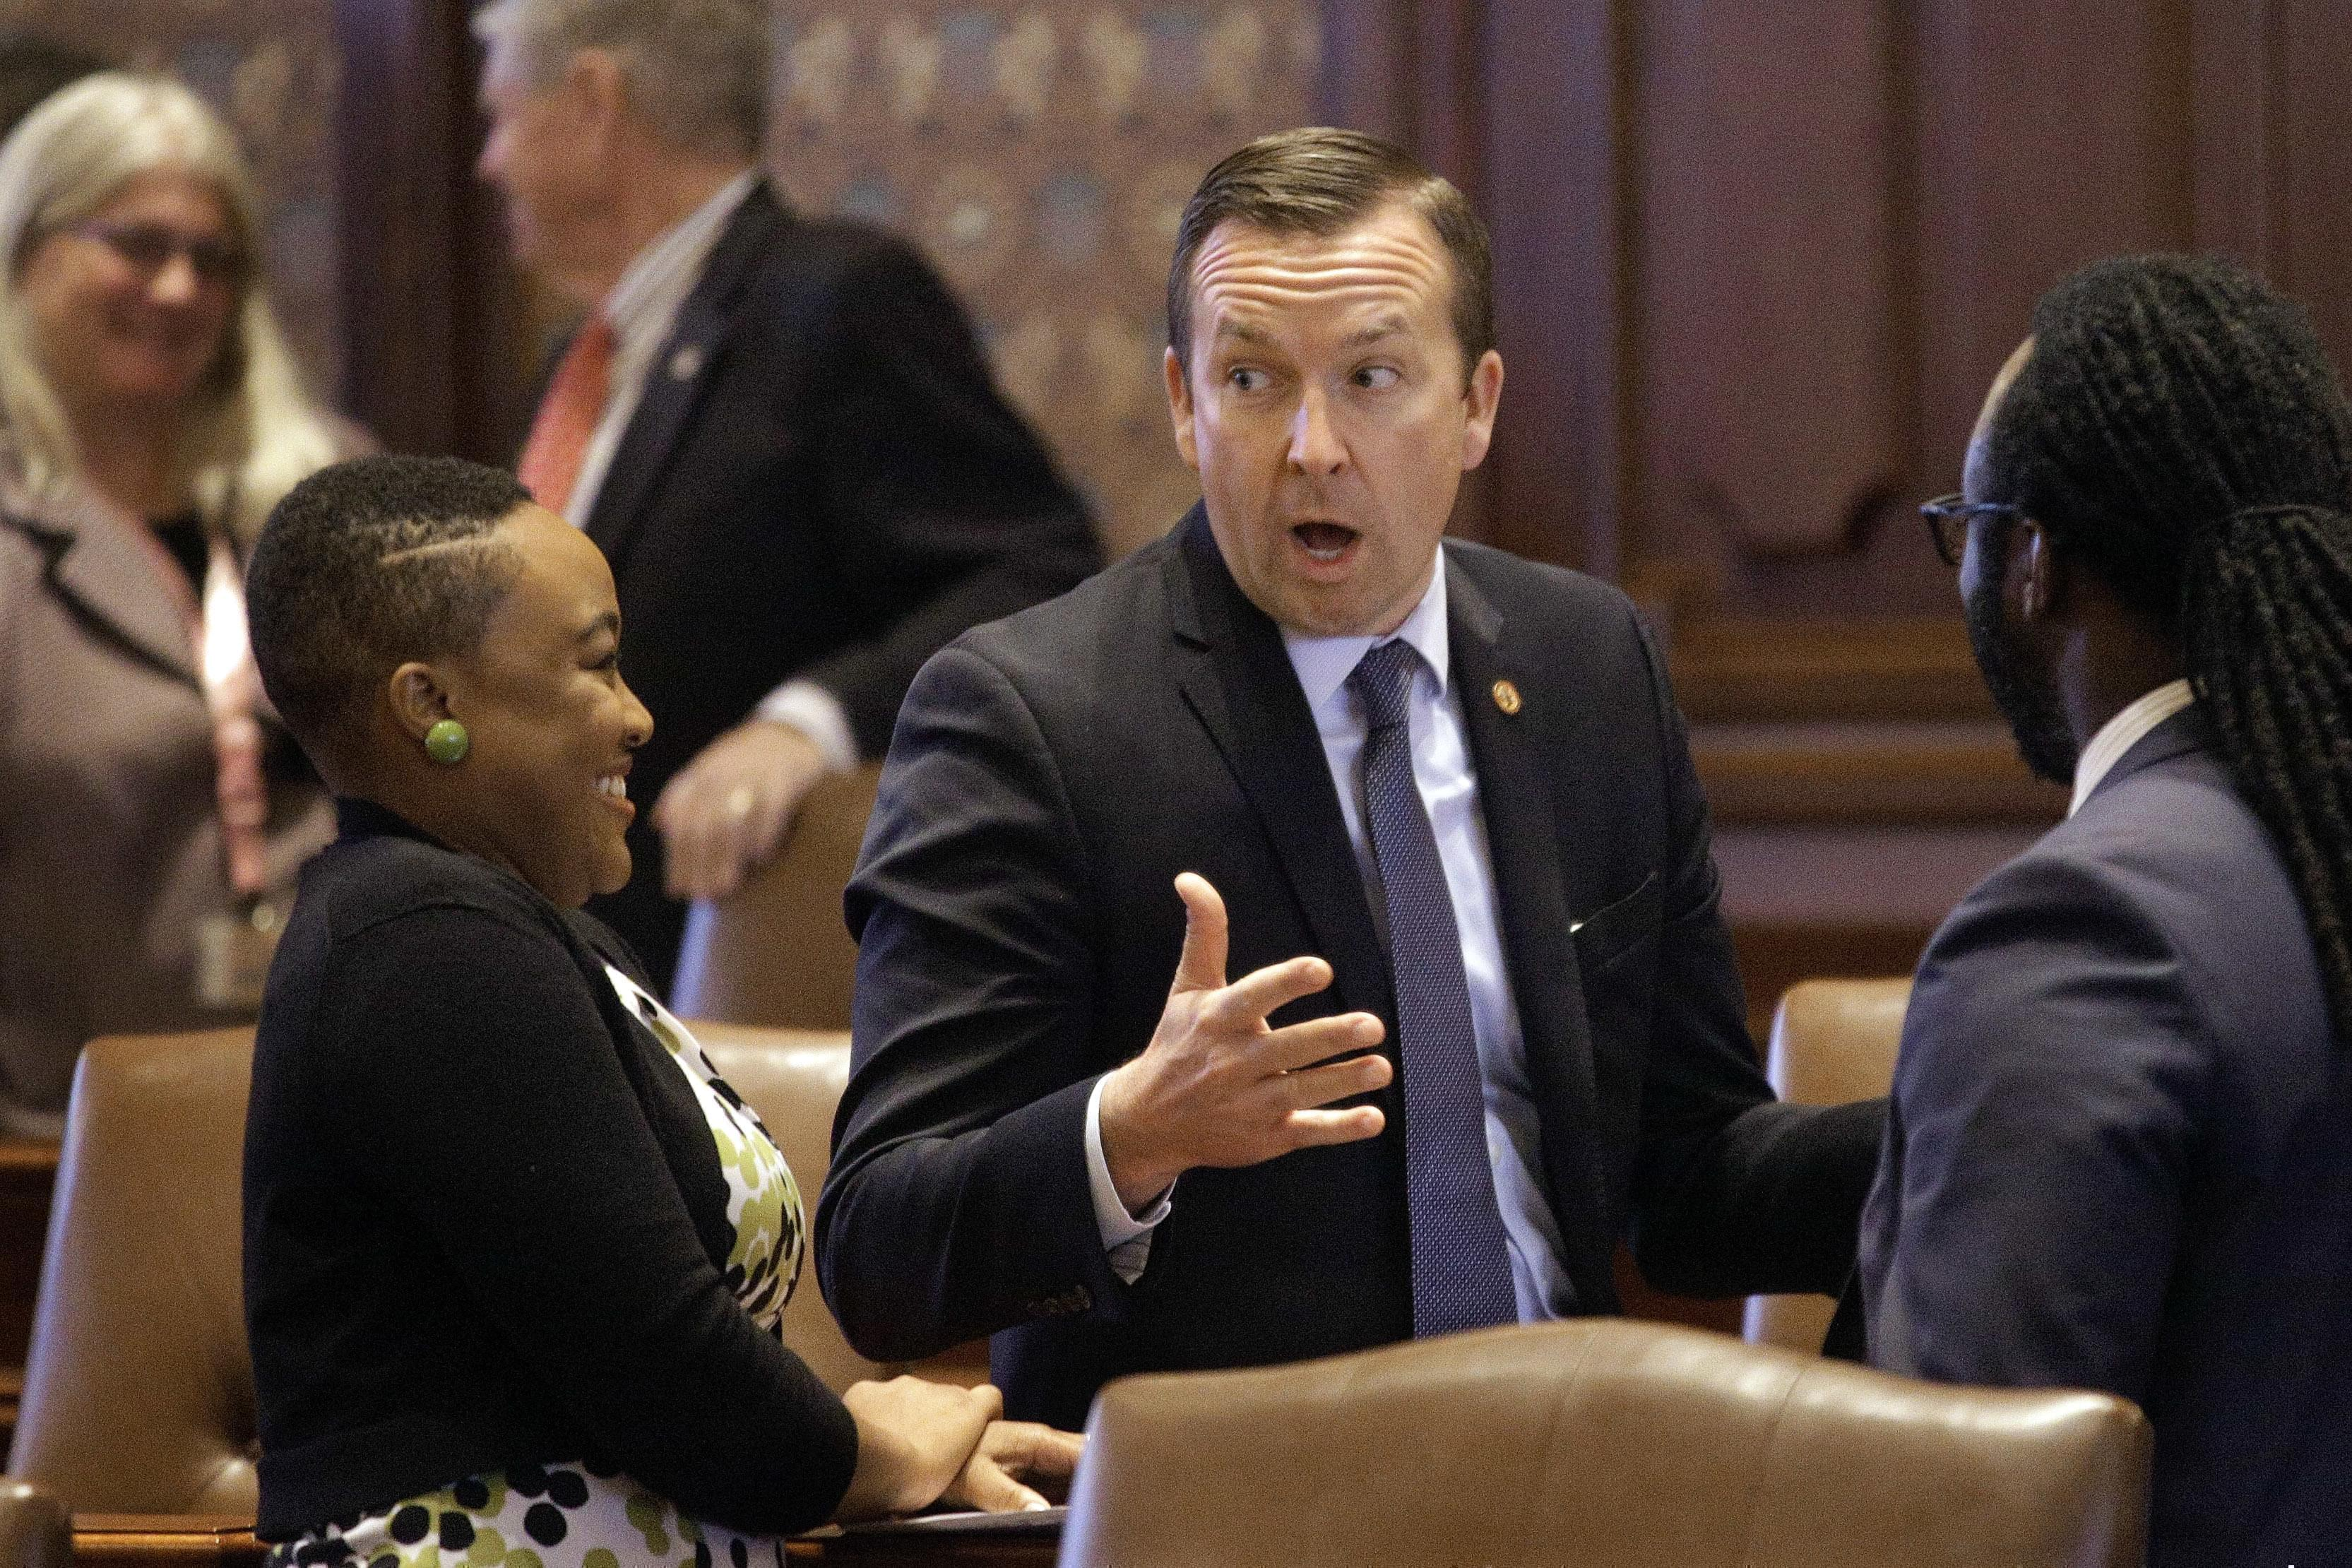 Andy Manar, D-Bunker Hill, speaks to lawmakers and staffers while on the Senate floor during veto session at the Illinois State Capitol.